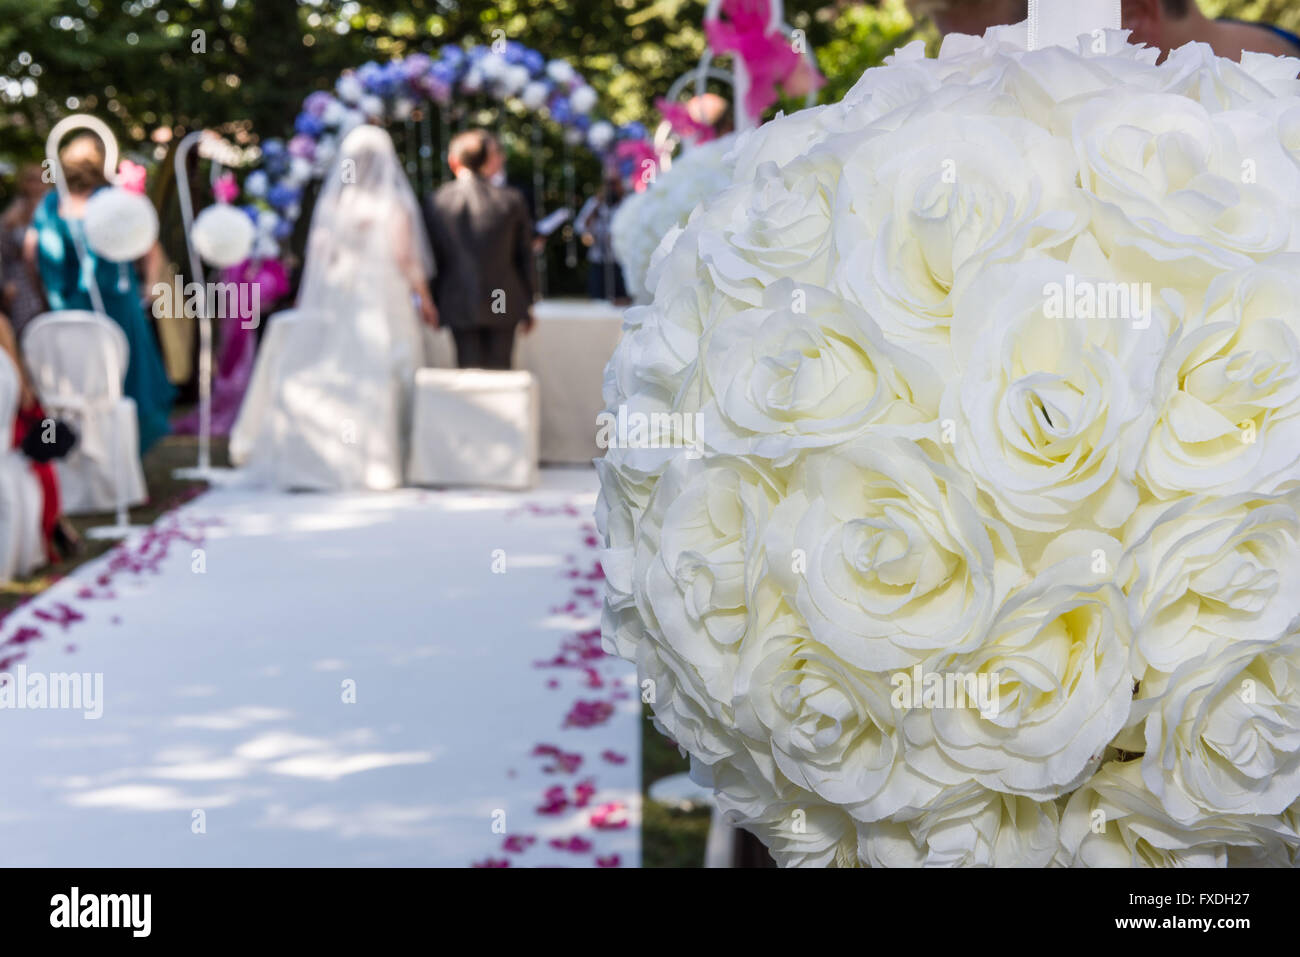 White Flower Ball Decoration For A Wedding Scene Stock Photo